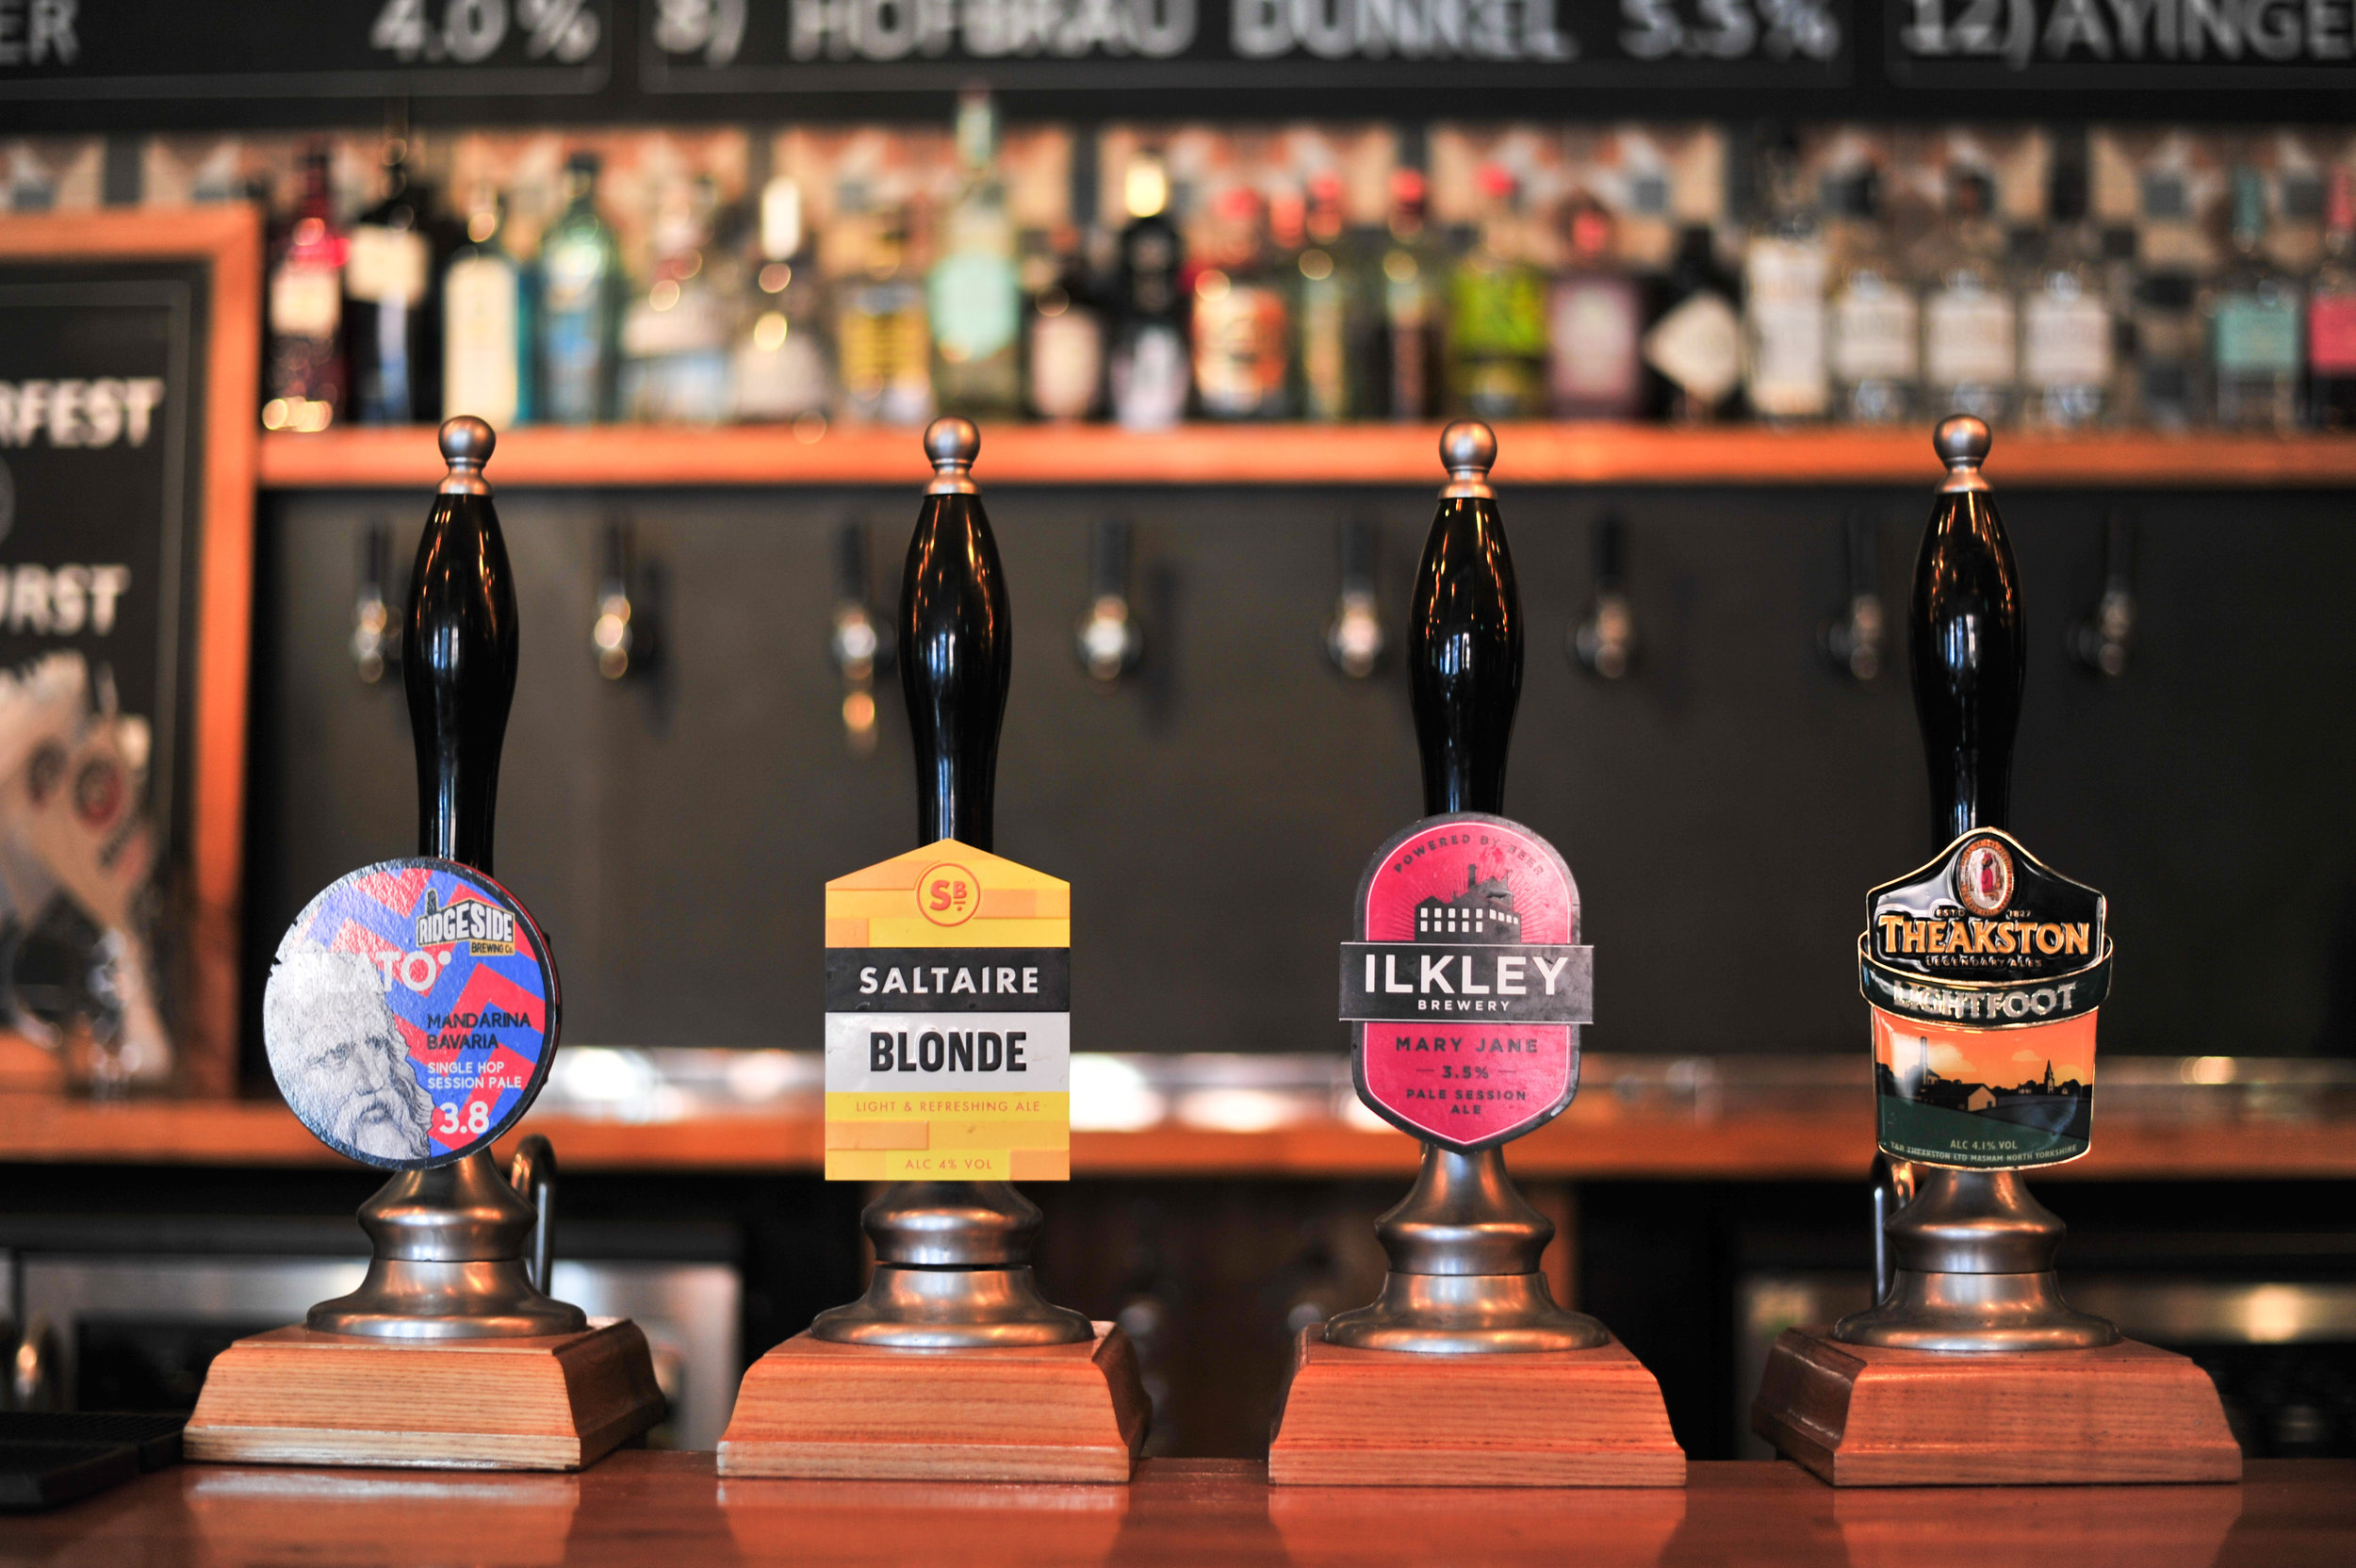 wednesday mid week treat - Any cask ale for only £2.50 - Come down and sample some of the finest Yorkshire and British ales there is to offer.